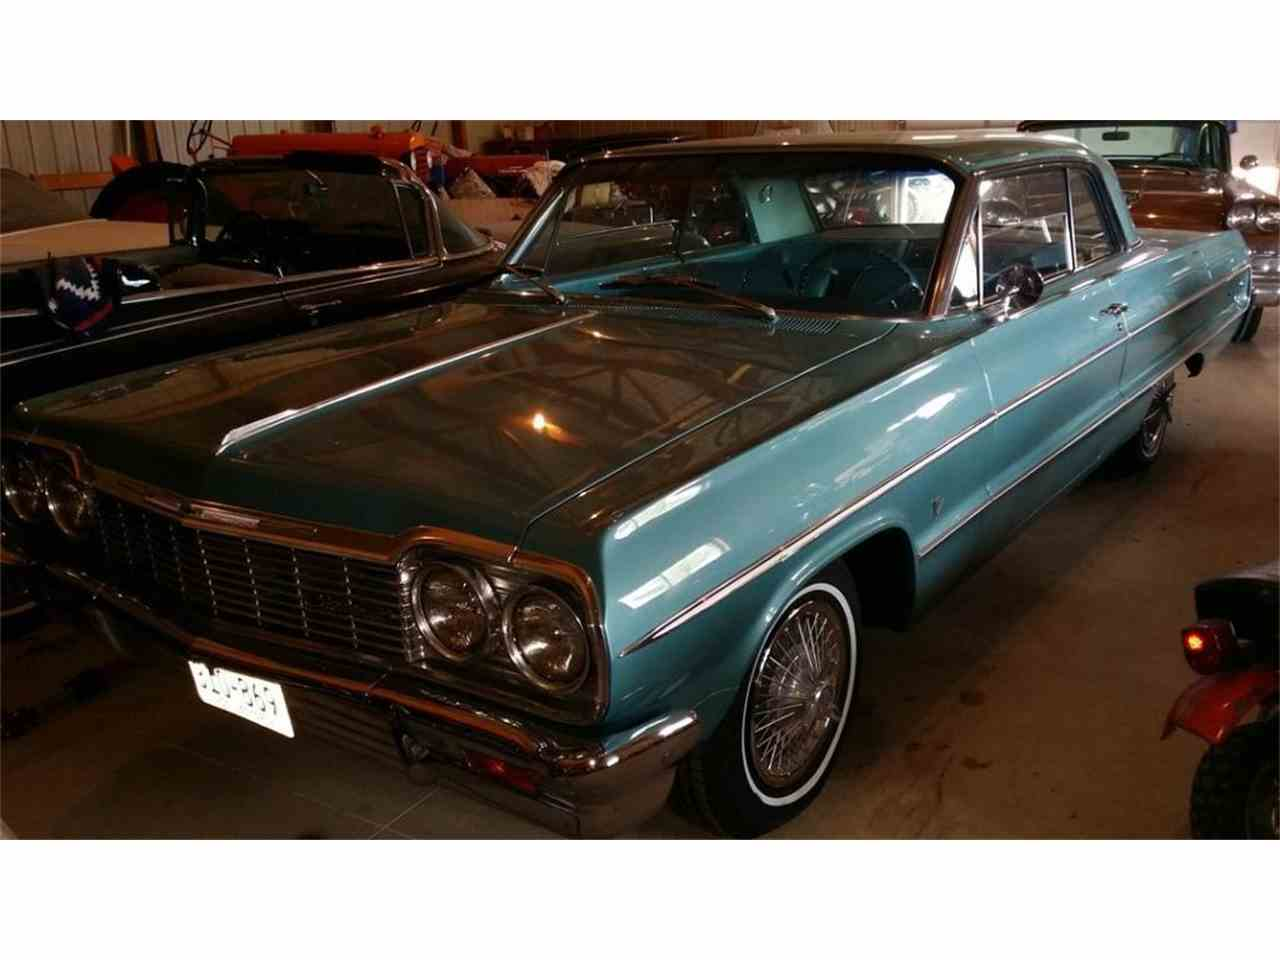 Large Picture of 1964 IMPALA 2 DOOR HARDTOP located in Minnesota - $21,500.00 Offered by Classic Rides and Rods - J1JM